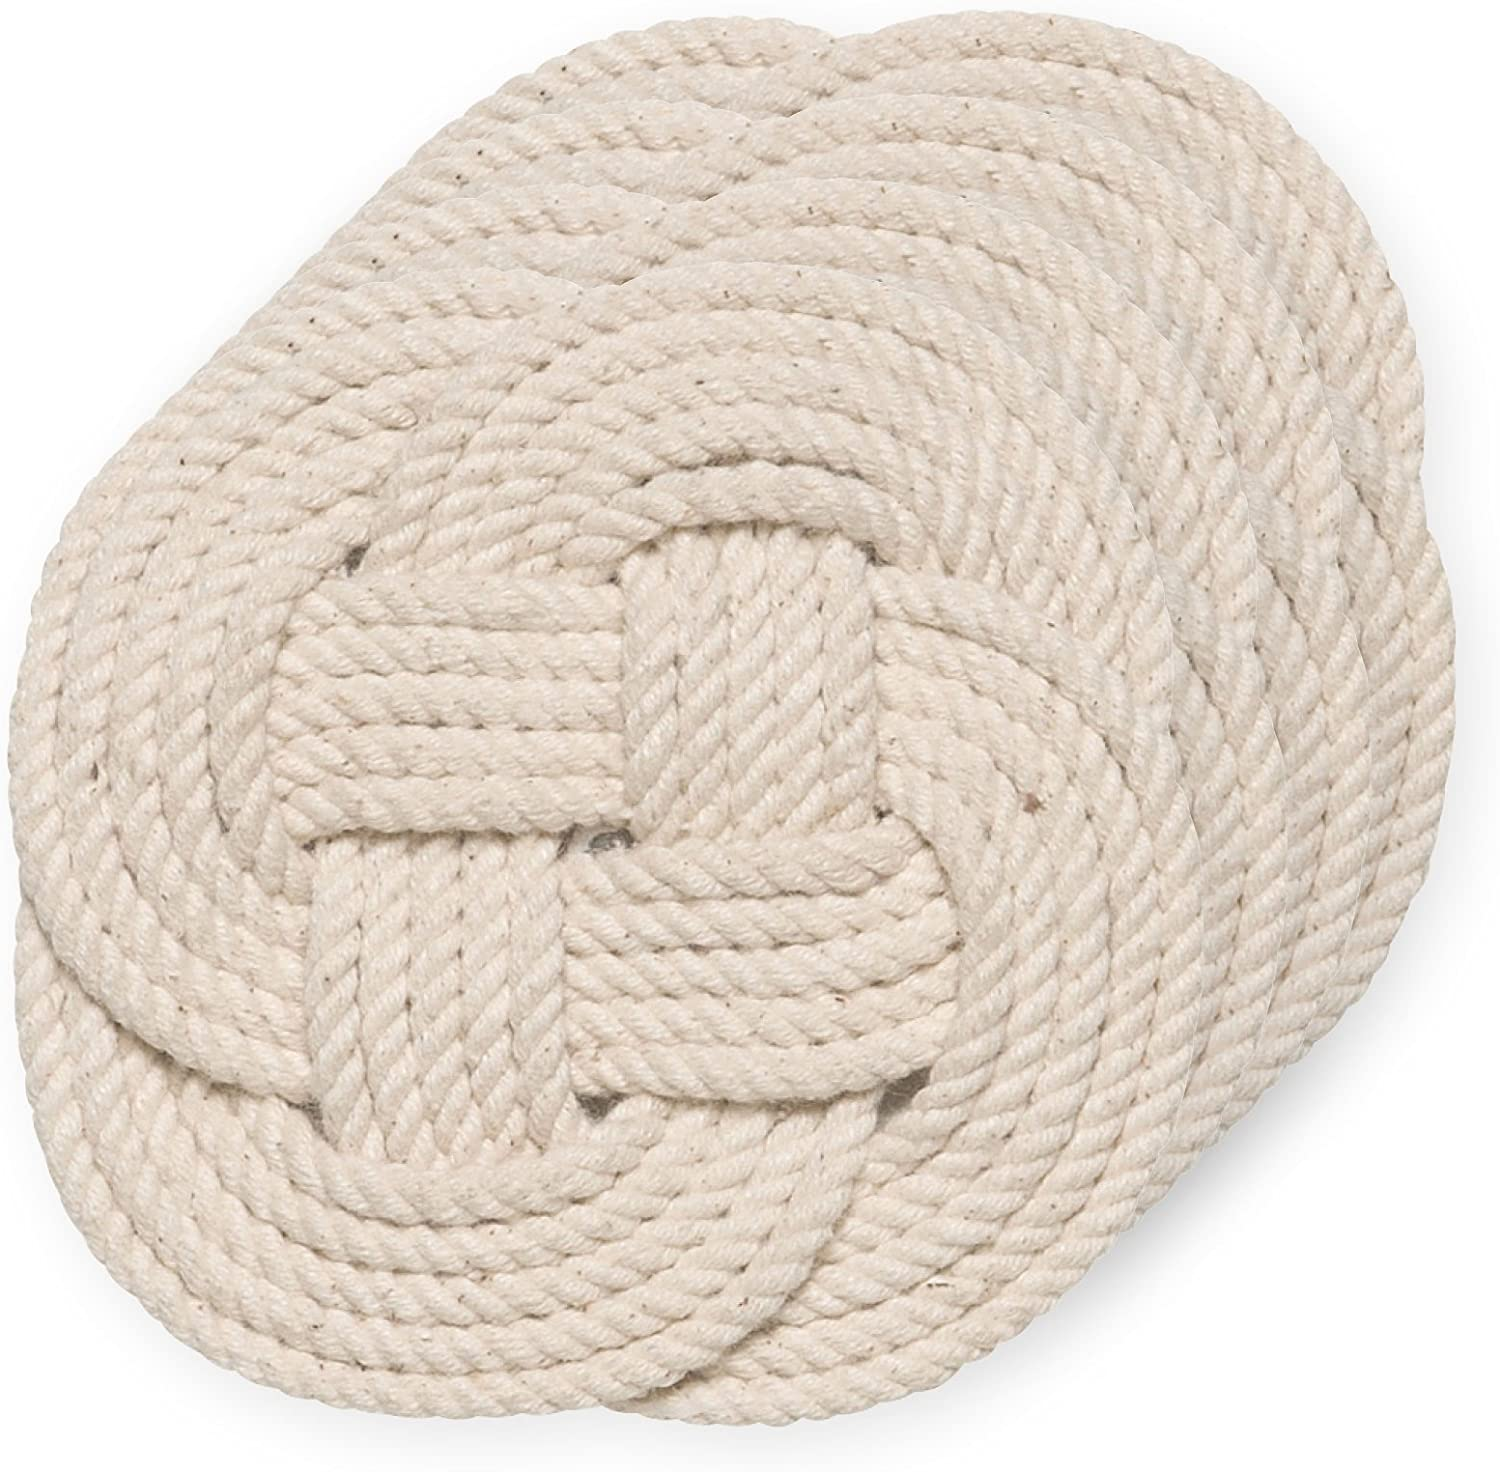 Crocheted Nautical Rope Coaster, Set of Four